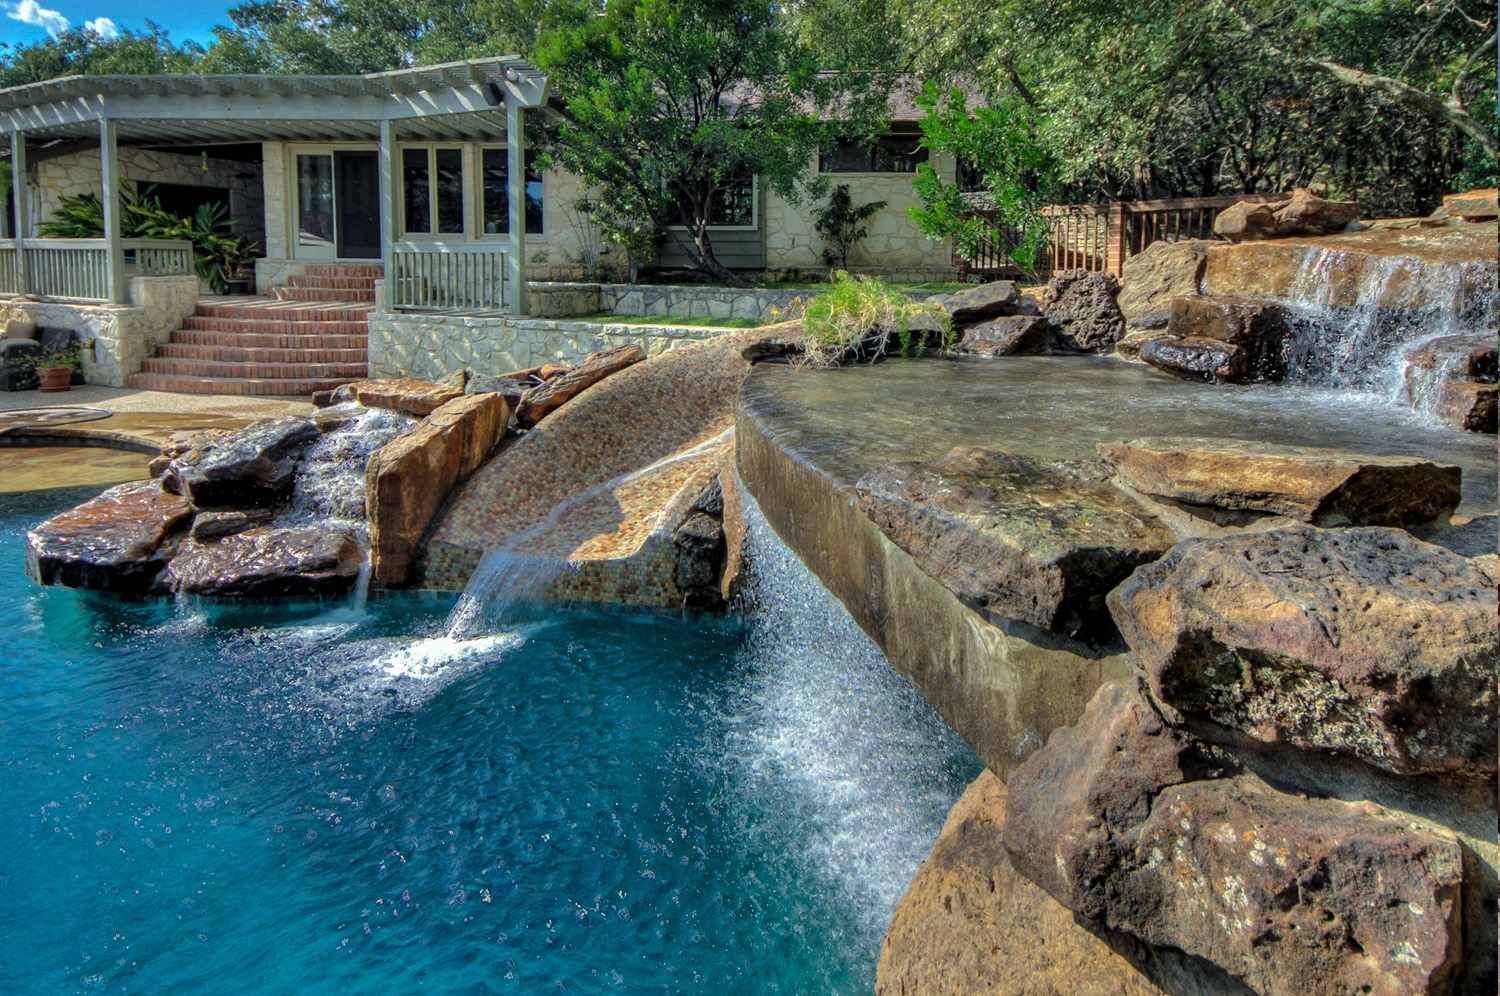 Pool remodel with rock waterfall feature.